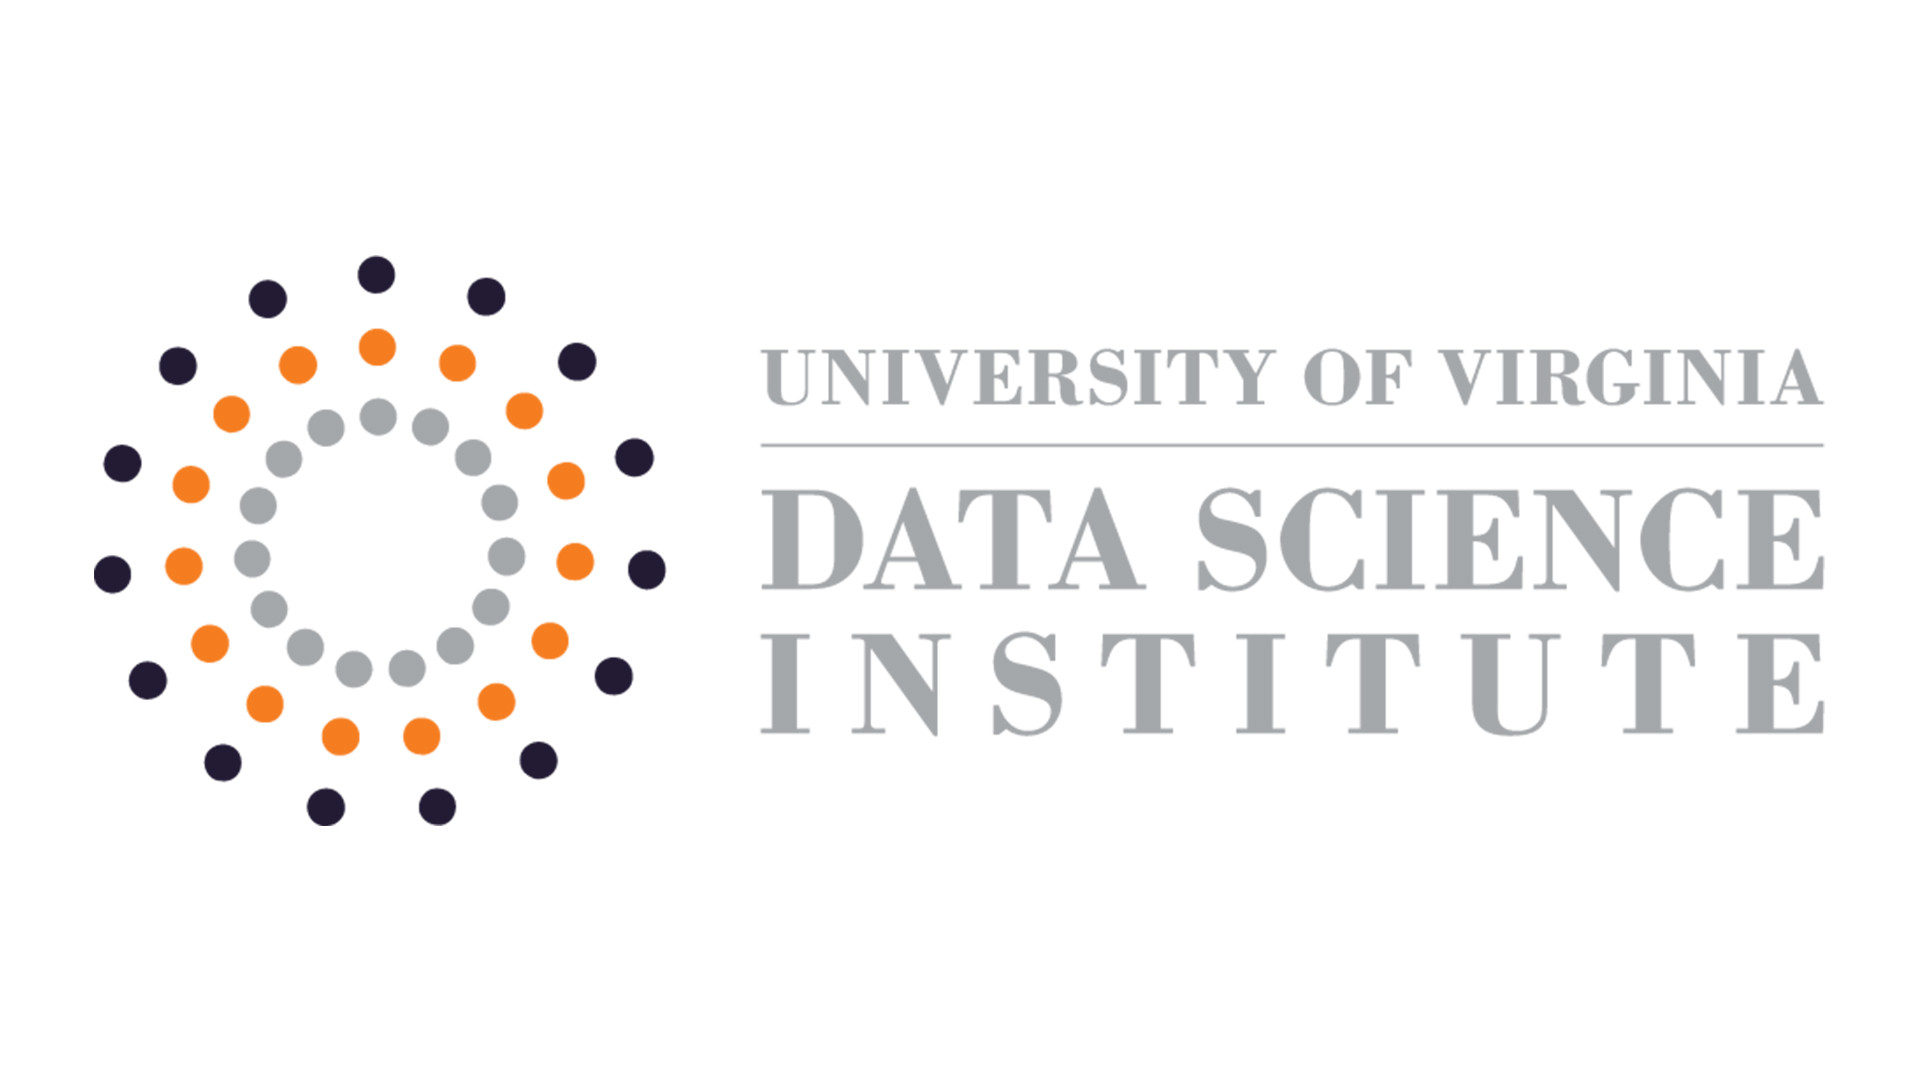 UVA DATA SCIENCE.jpg